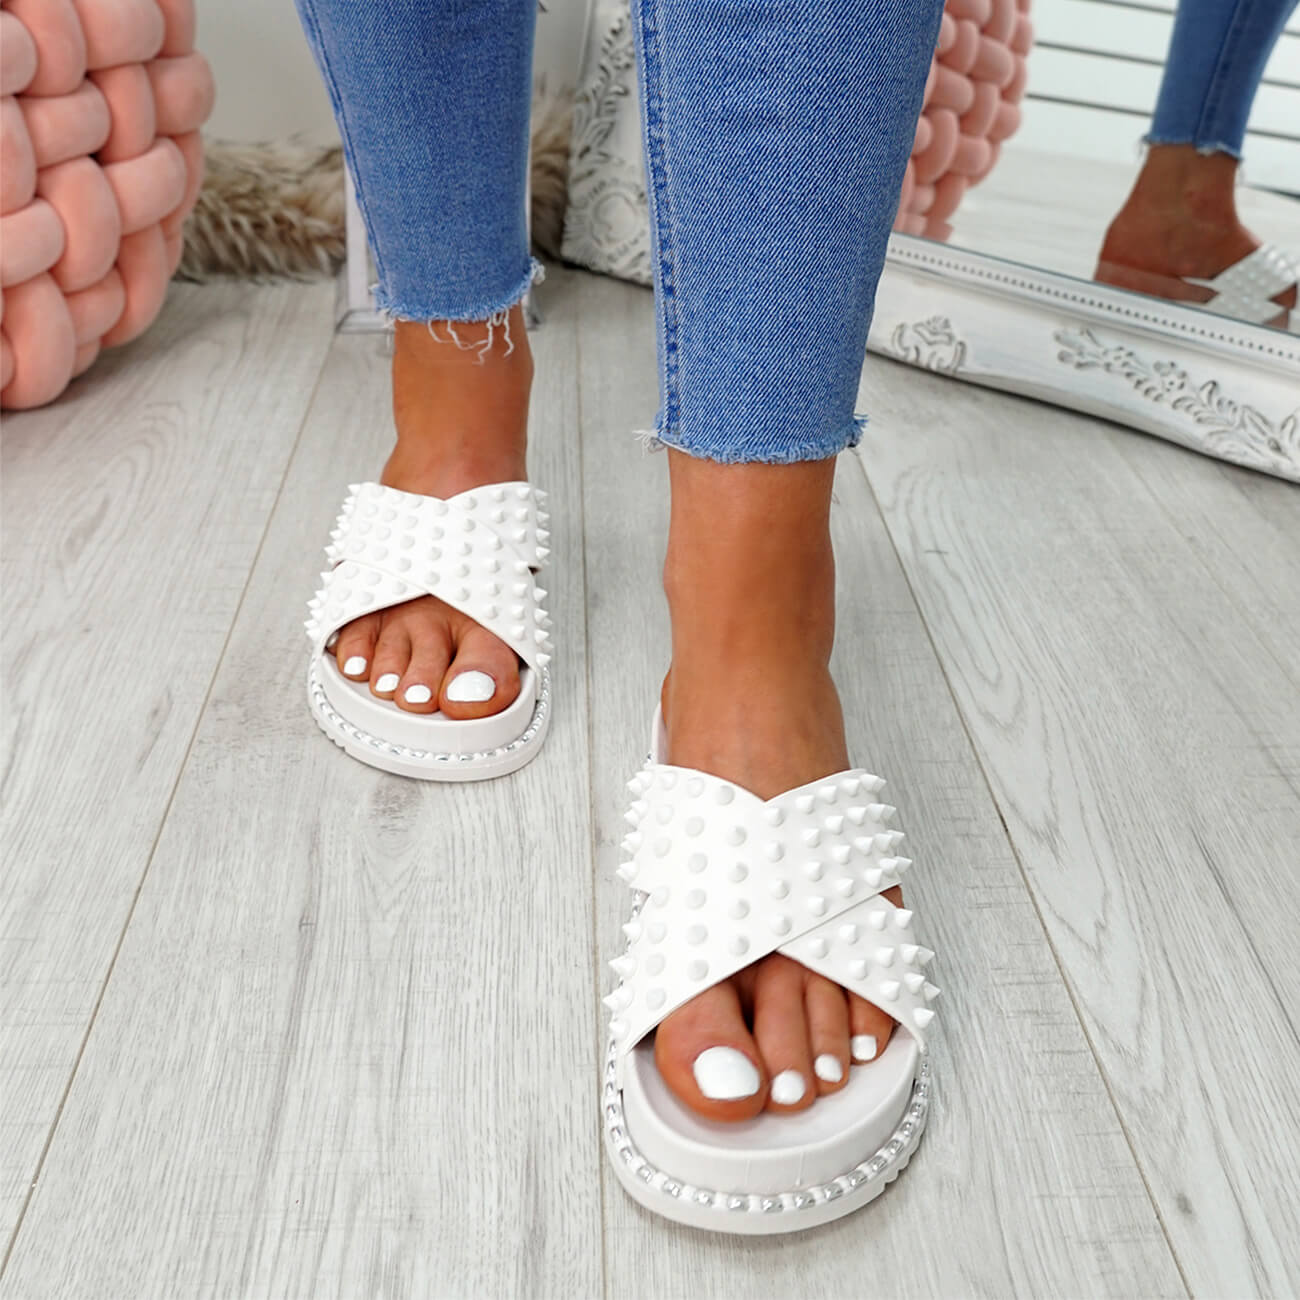 WOMENS-LADIES-SPIKE-STUDS-PEEP-TOE-FLAT-SANDALS-FLIP-FLOPS-SLIP-ON-SHOES-SIZE thumbnail 23